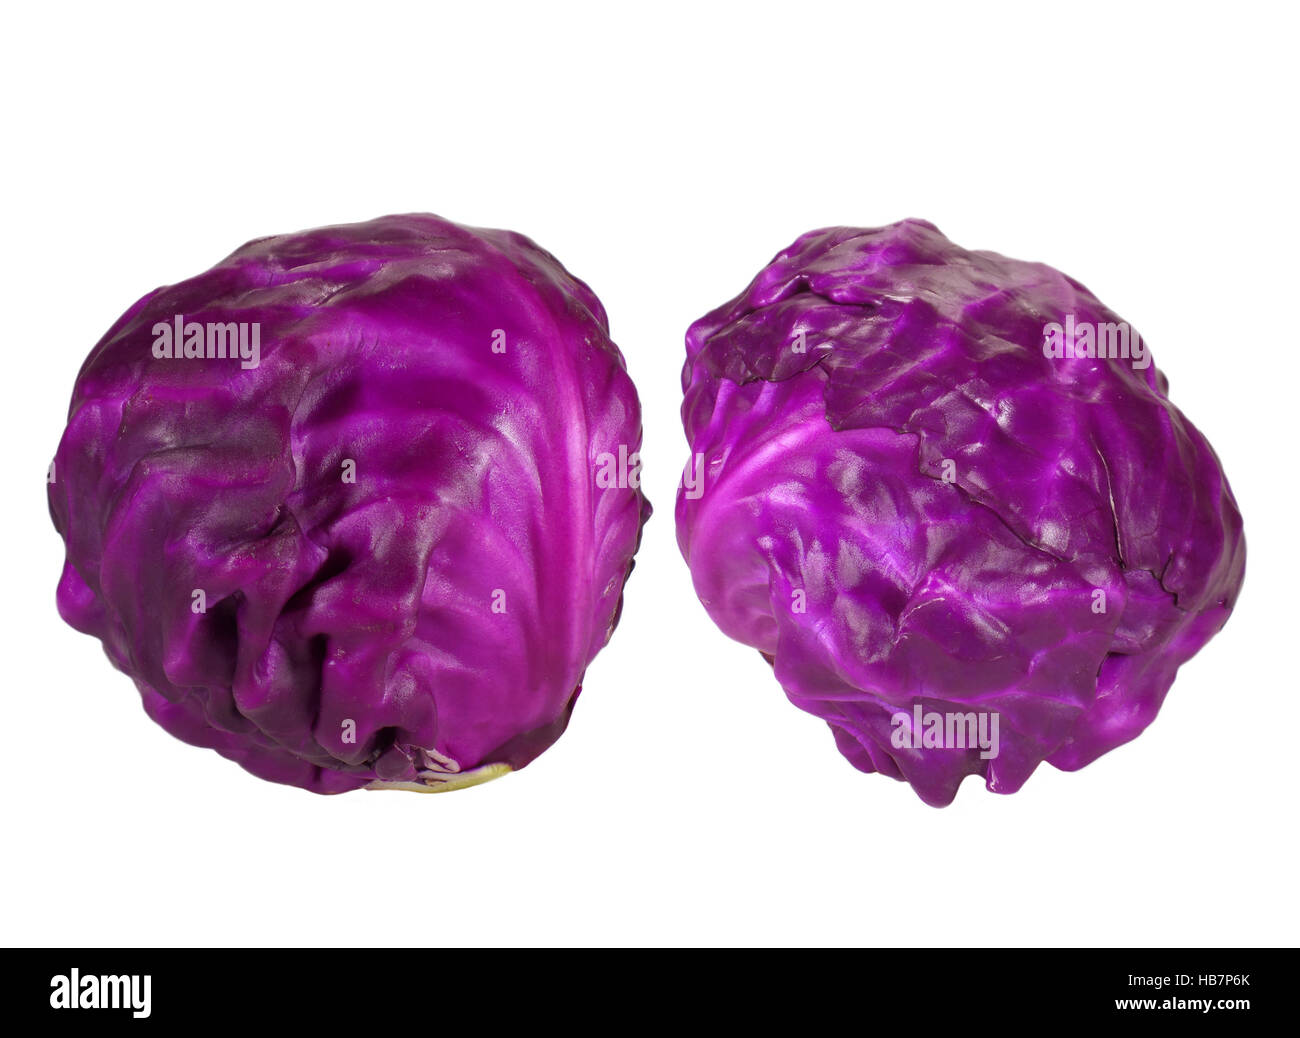 Two fresh whole red ripe cabbages isolated on white background Stock Photo